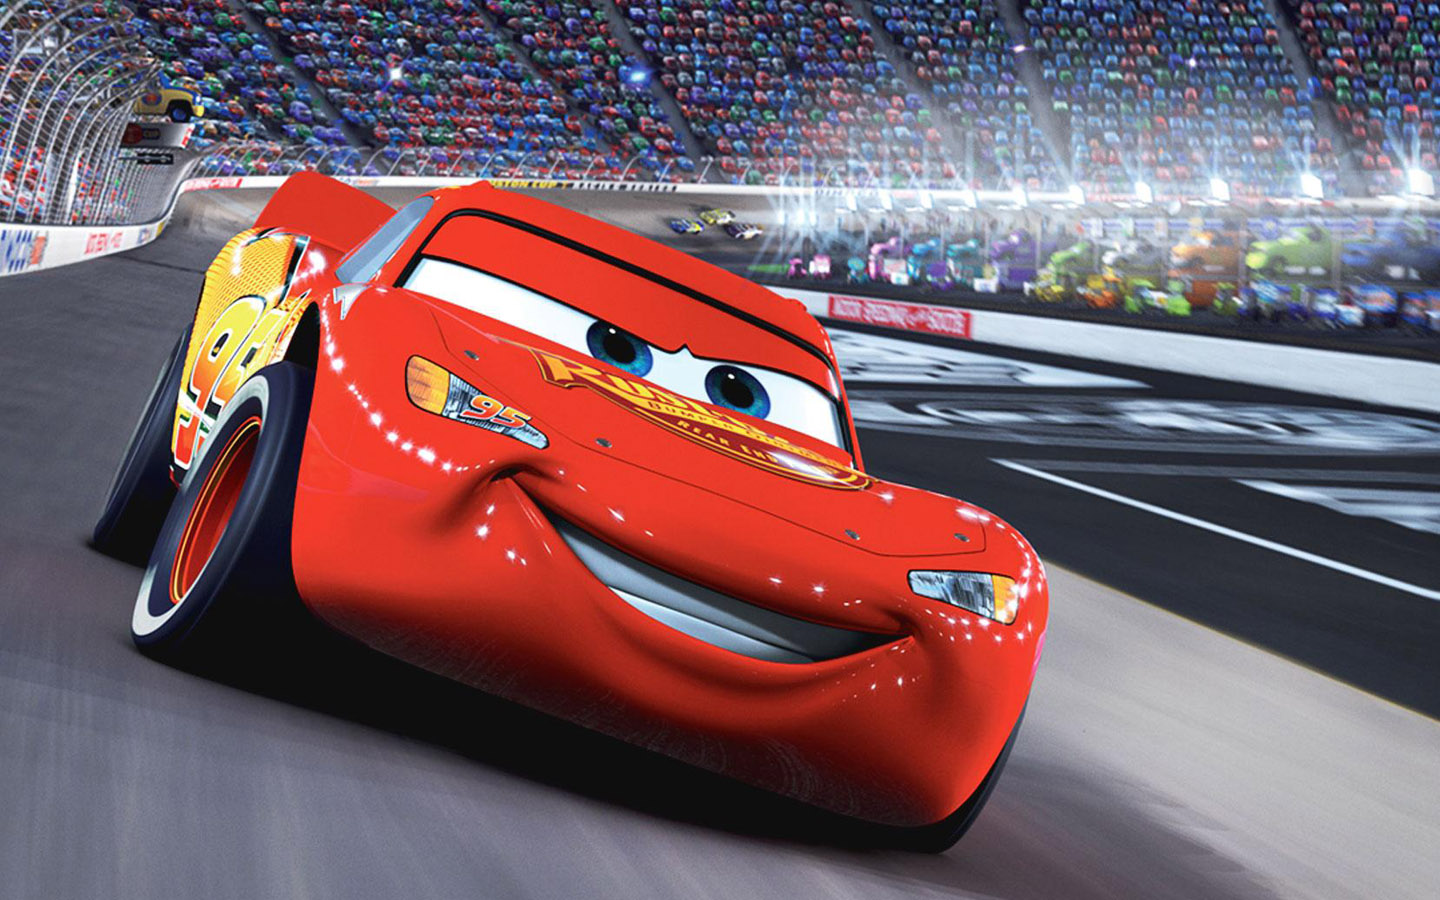 Wallpaper Cars Movie Hd Background For Android Cartoons With Image